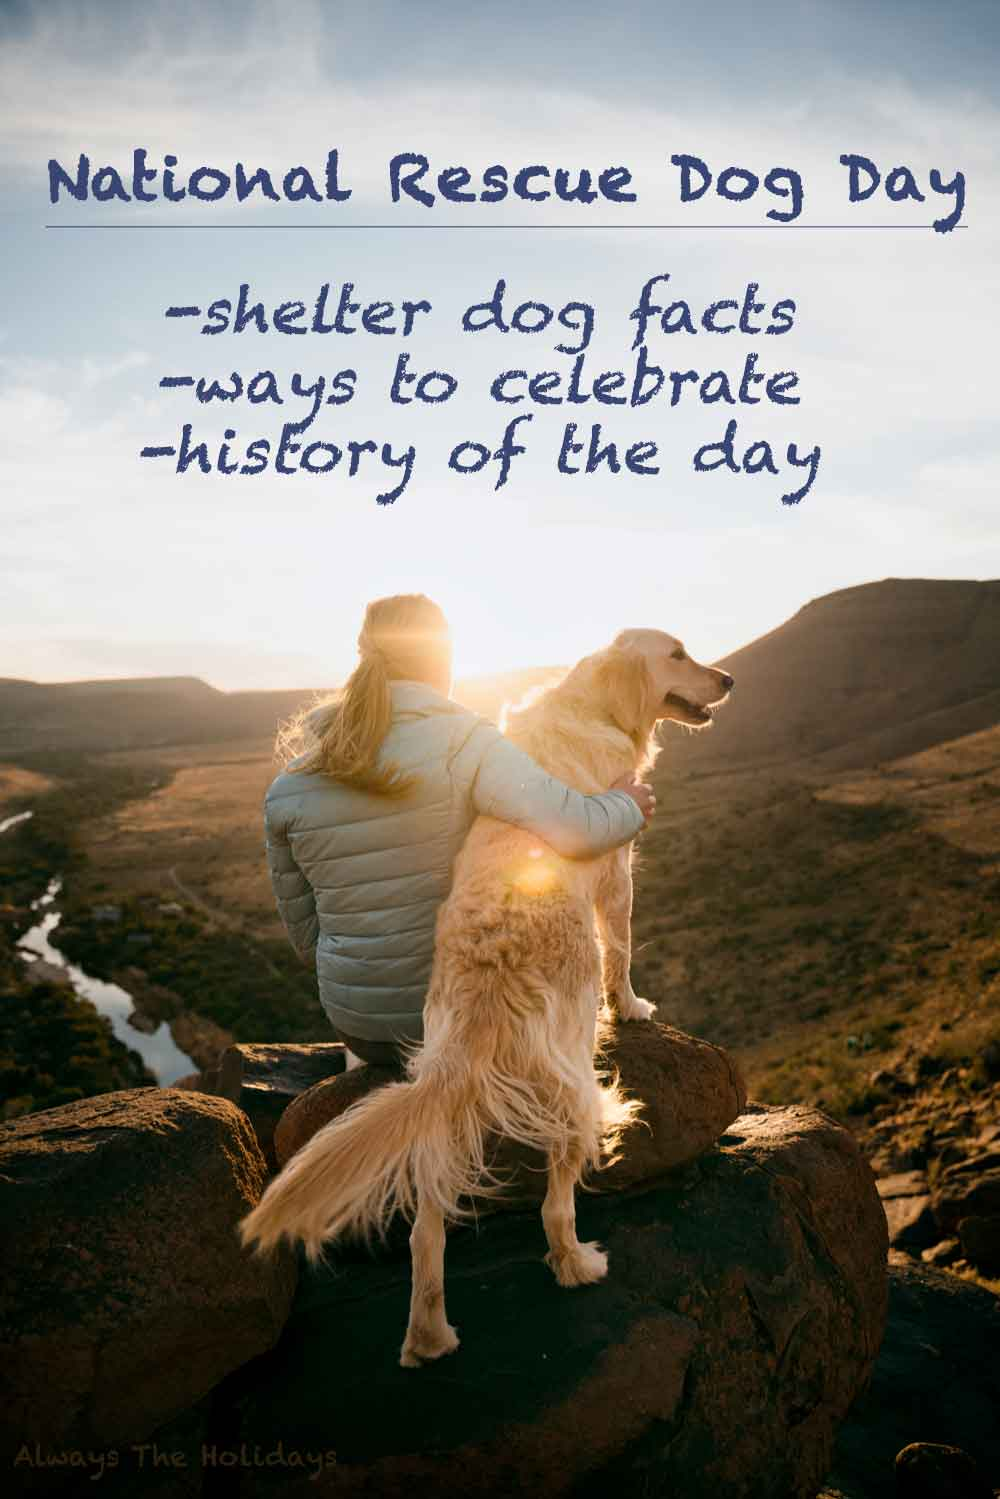 A woman with her arm around a golden retriever dog on the top of a mountain at sunset with a text overlay for National Rescue Dog Day.